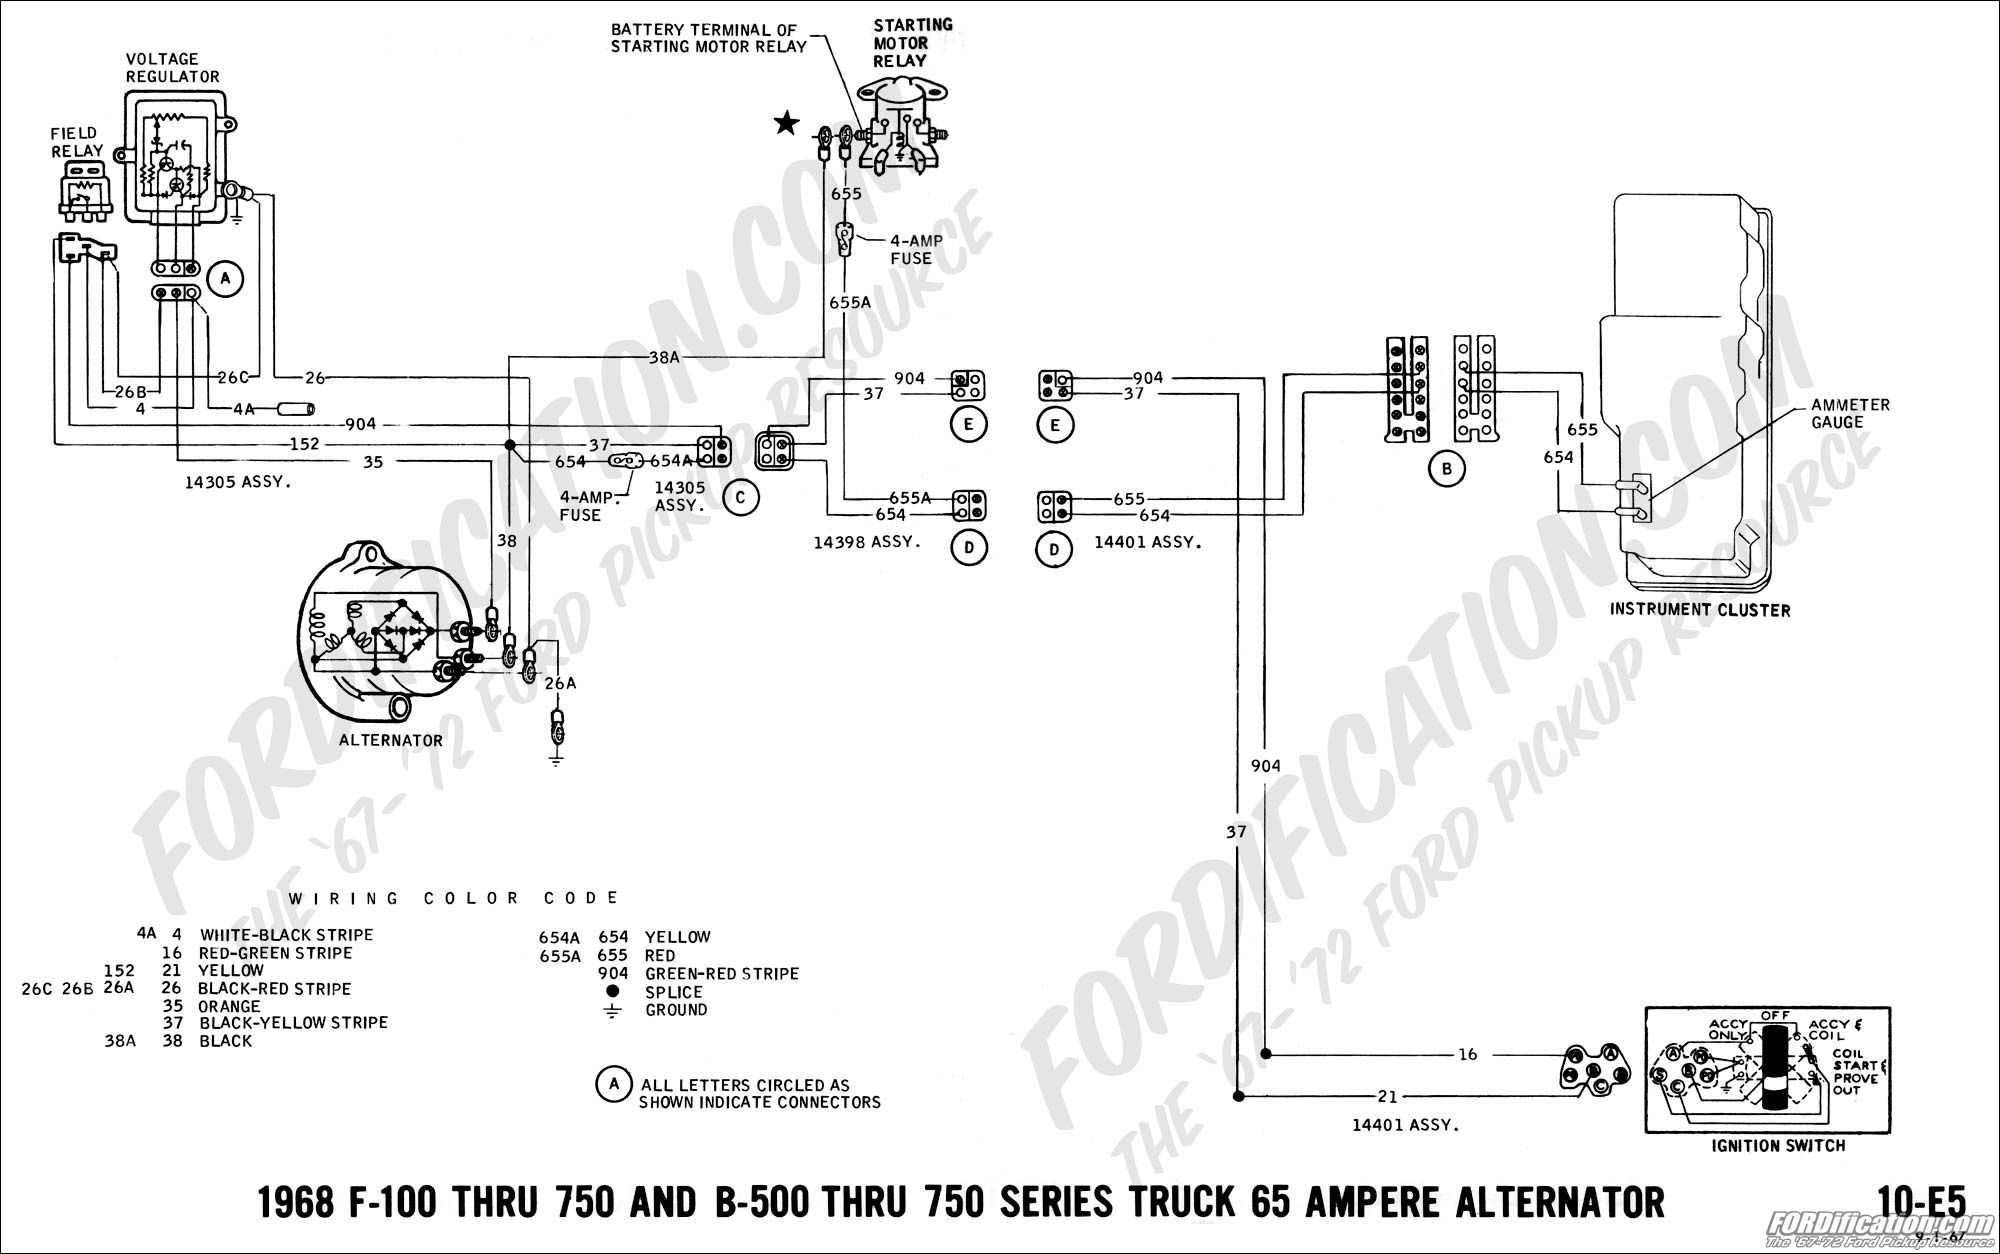 1968 ford alternator wiring diagram free picture just wiring data rh ag  skiphire co uk 1977 ford f100 alternator wiring diagram 1977 ford f150  alternator ...